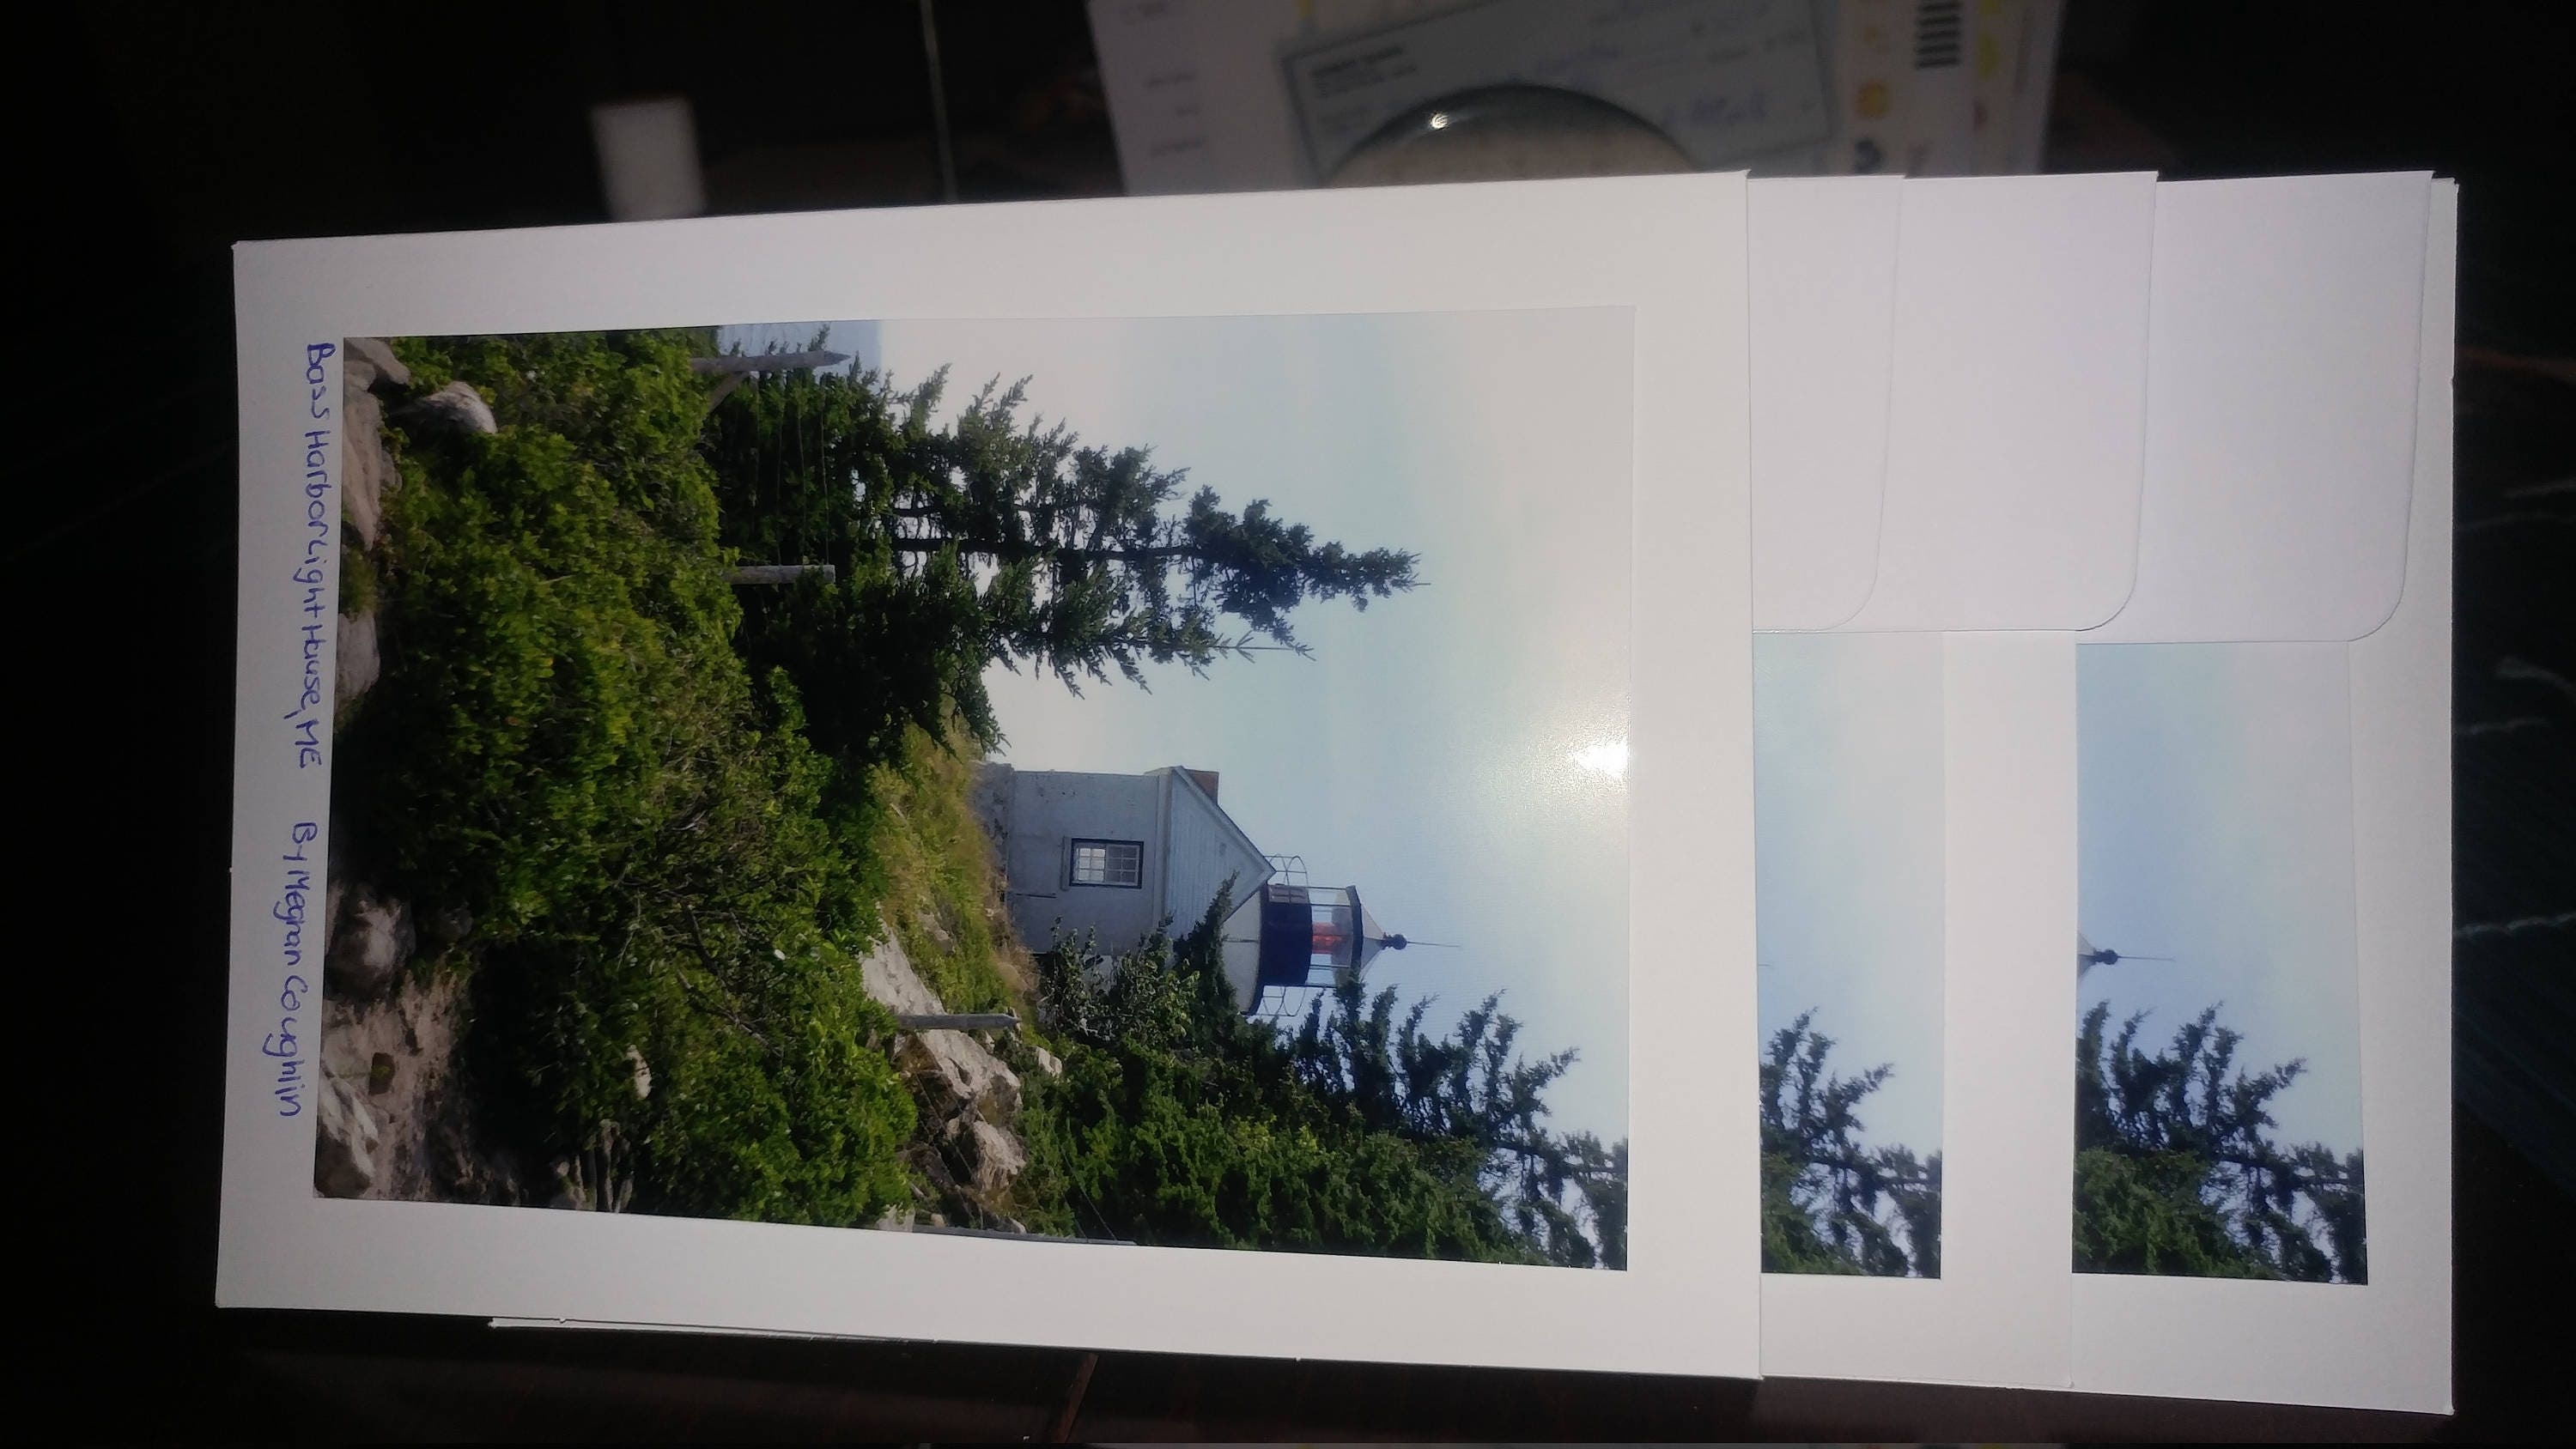 Blank greeting cards bass harbor head lighthouse with zoom kristyandbryce Choice Image